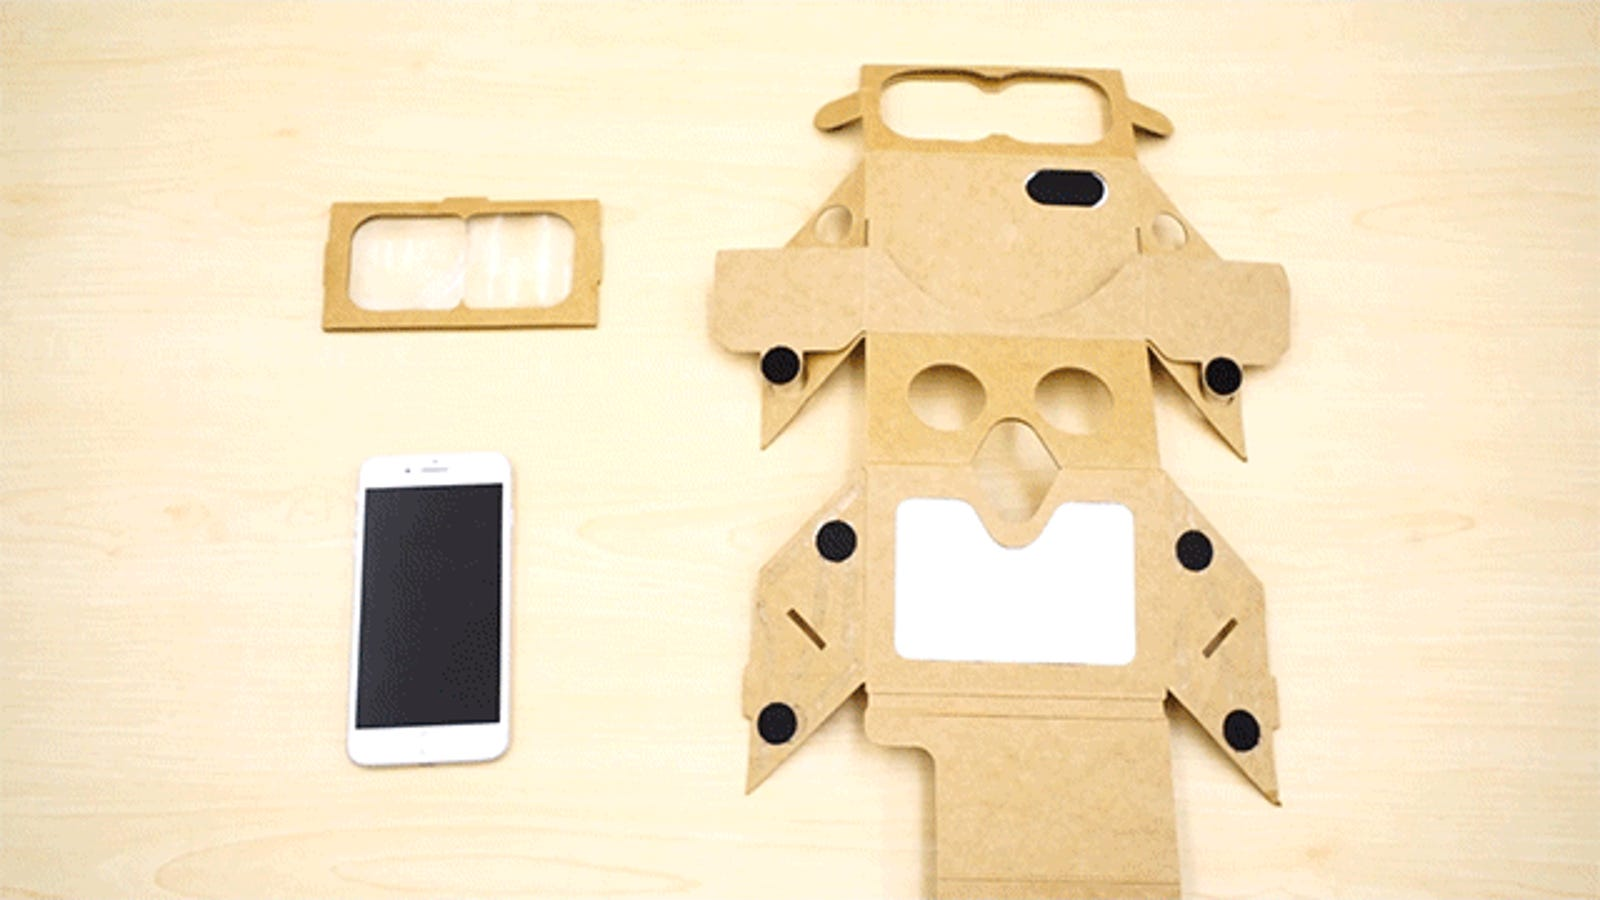 Make Your Own Bootleg HoloLens With the Cardboard Holokit